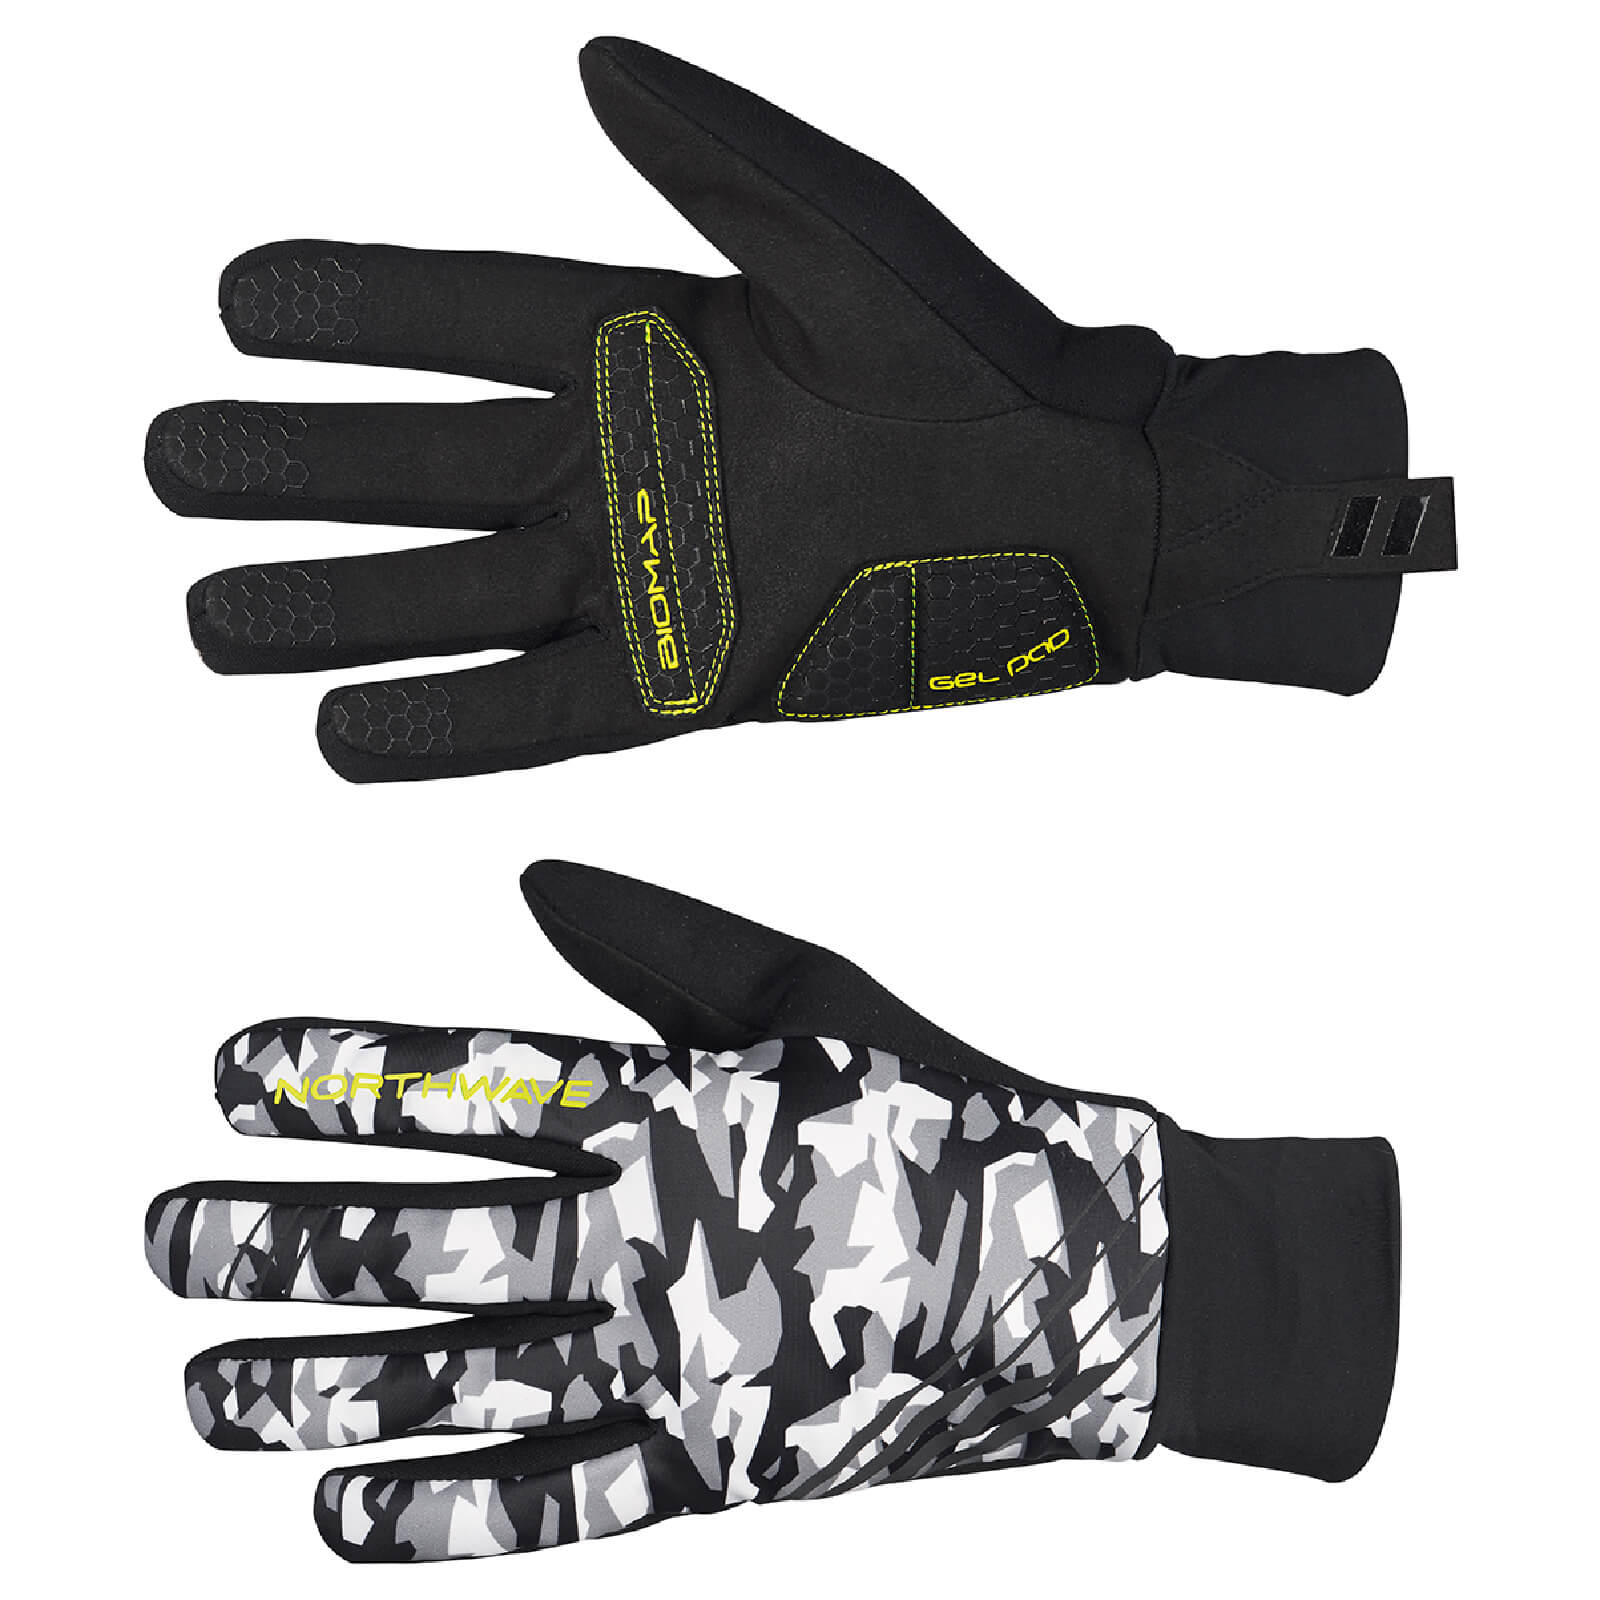 Northwave Power-2 Gel Pad Winter Gloves - Camo Yellow